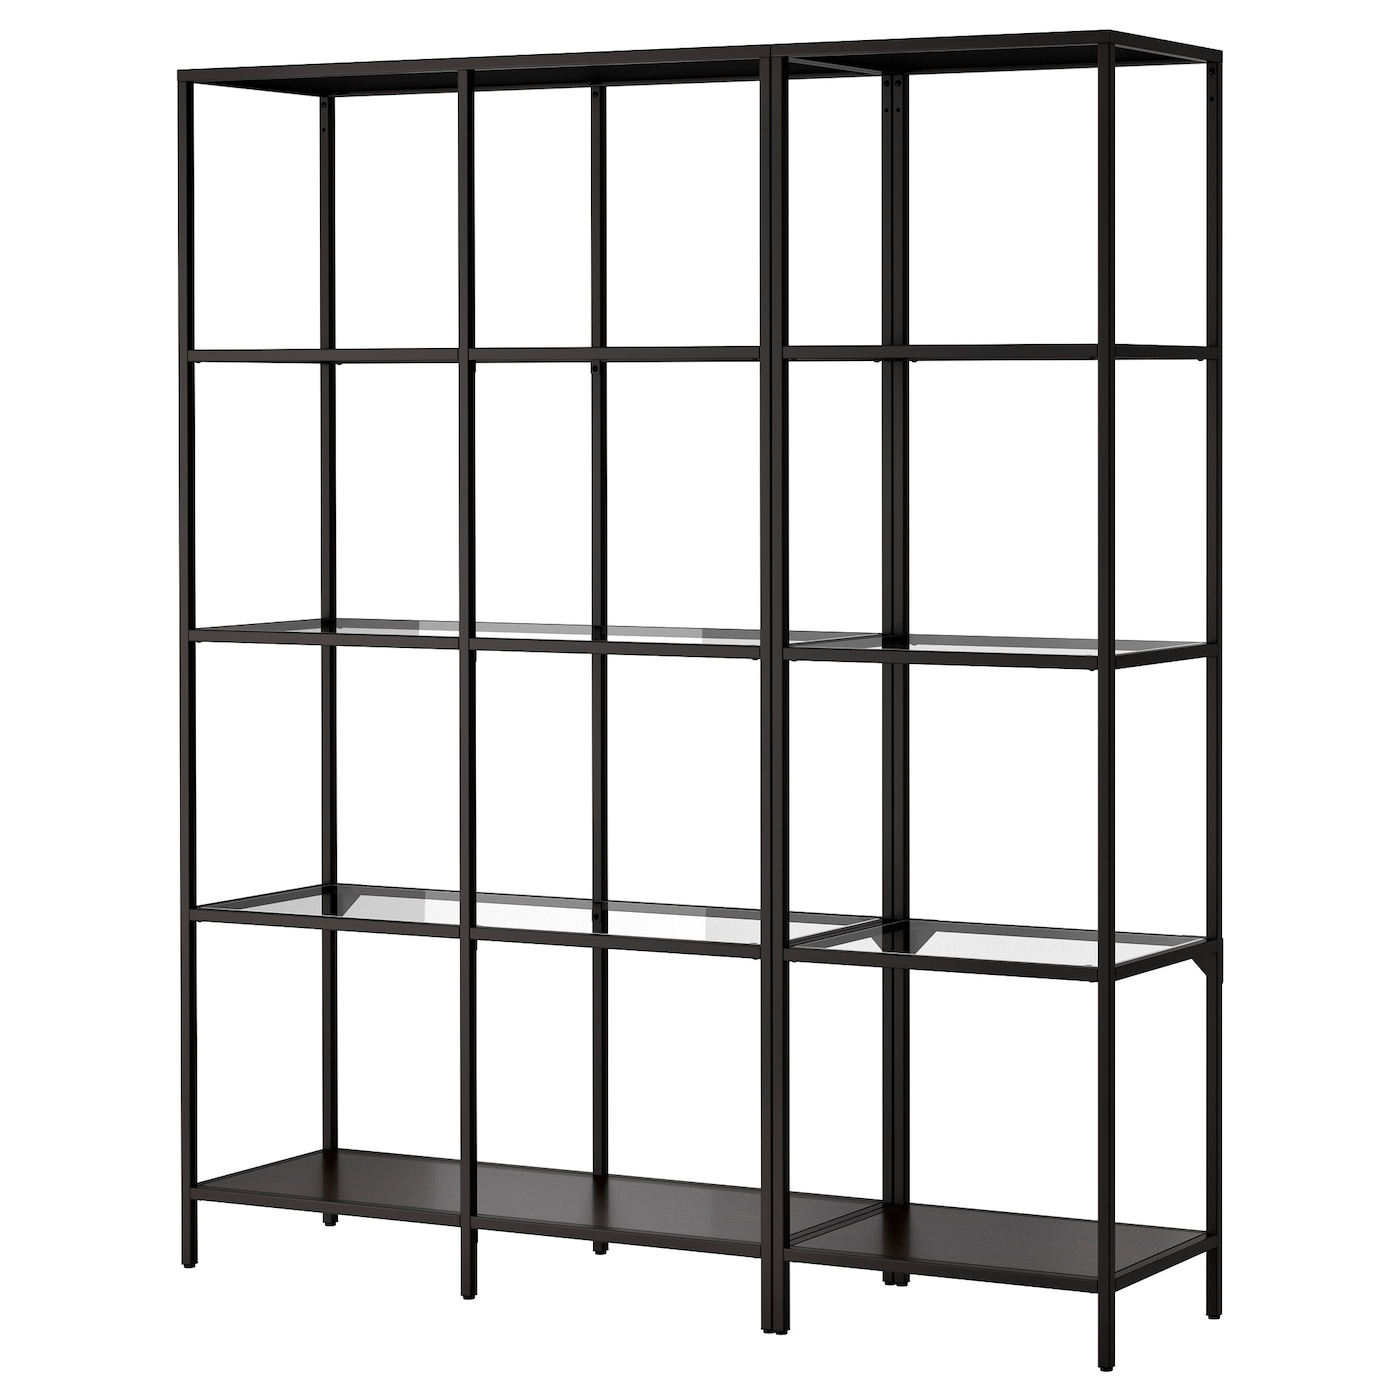 Ikea VittsjÖ Storage Combination Adjule Feet Stands Steady Also On An Uneven Floor